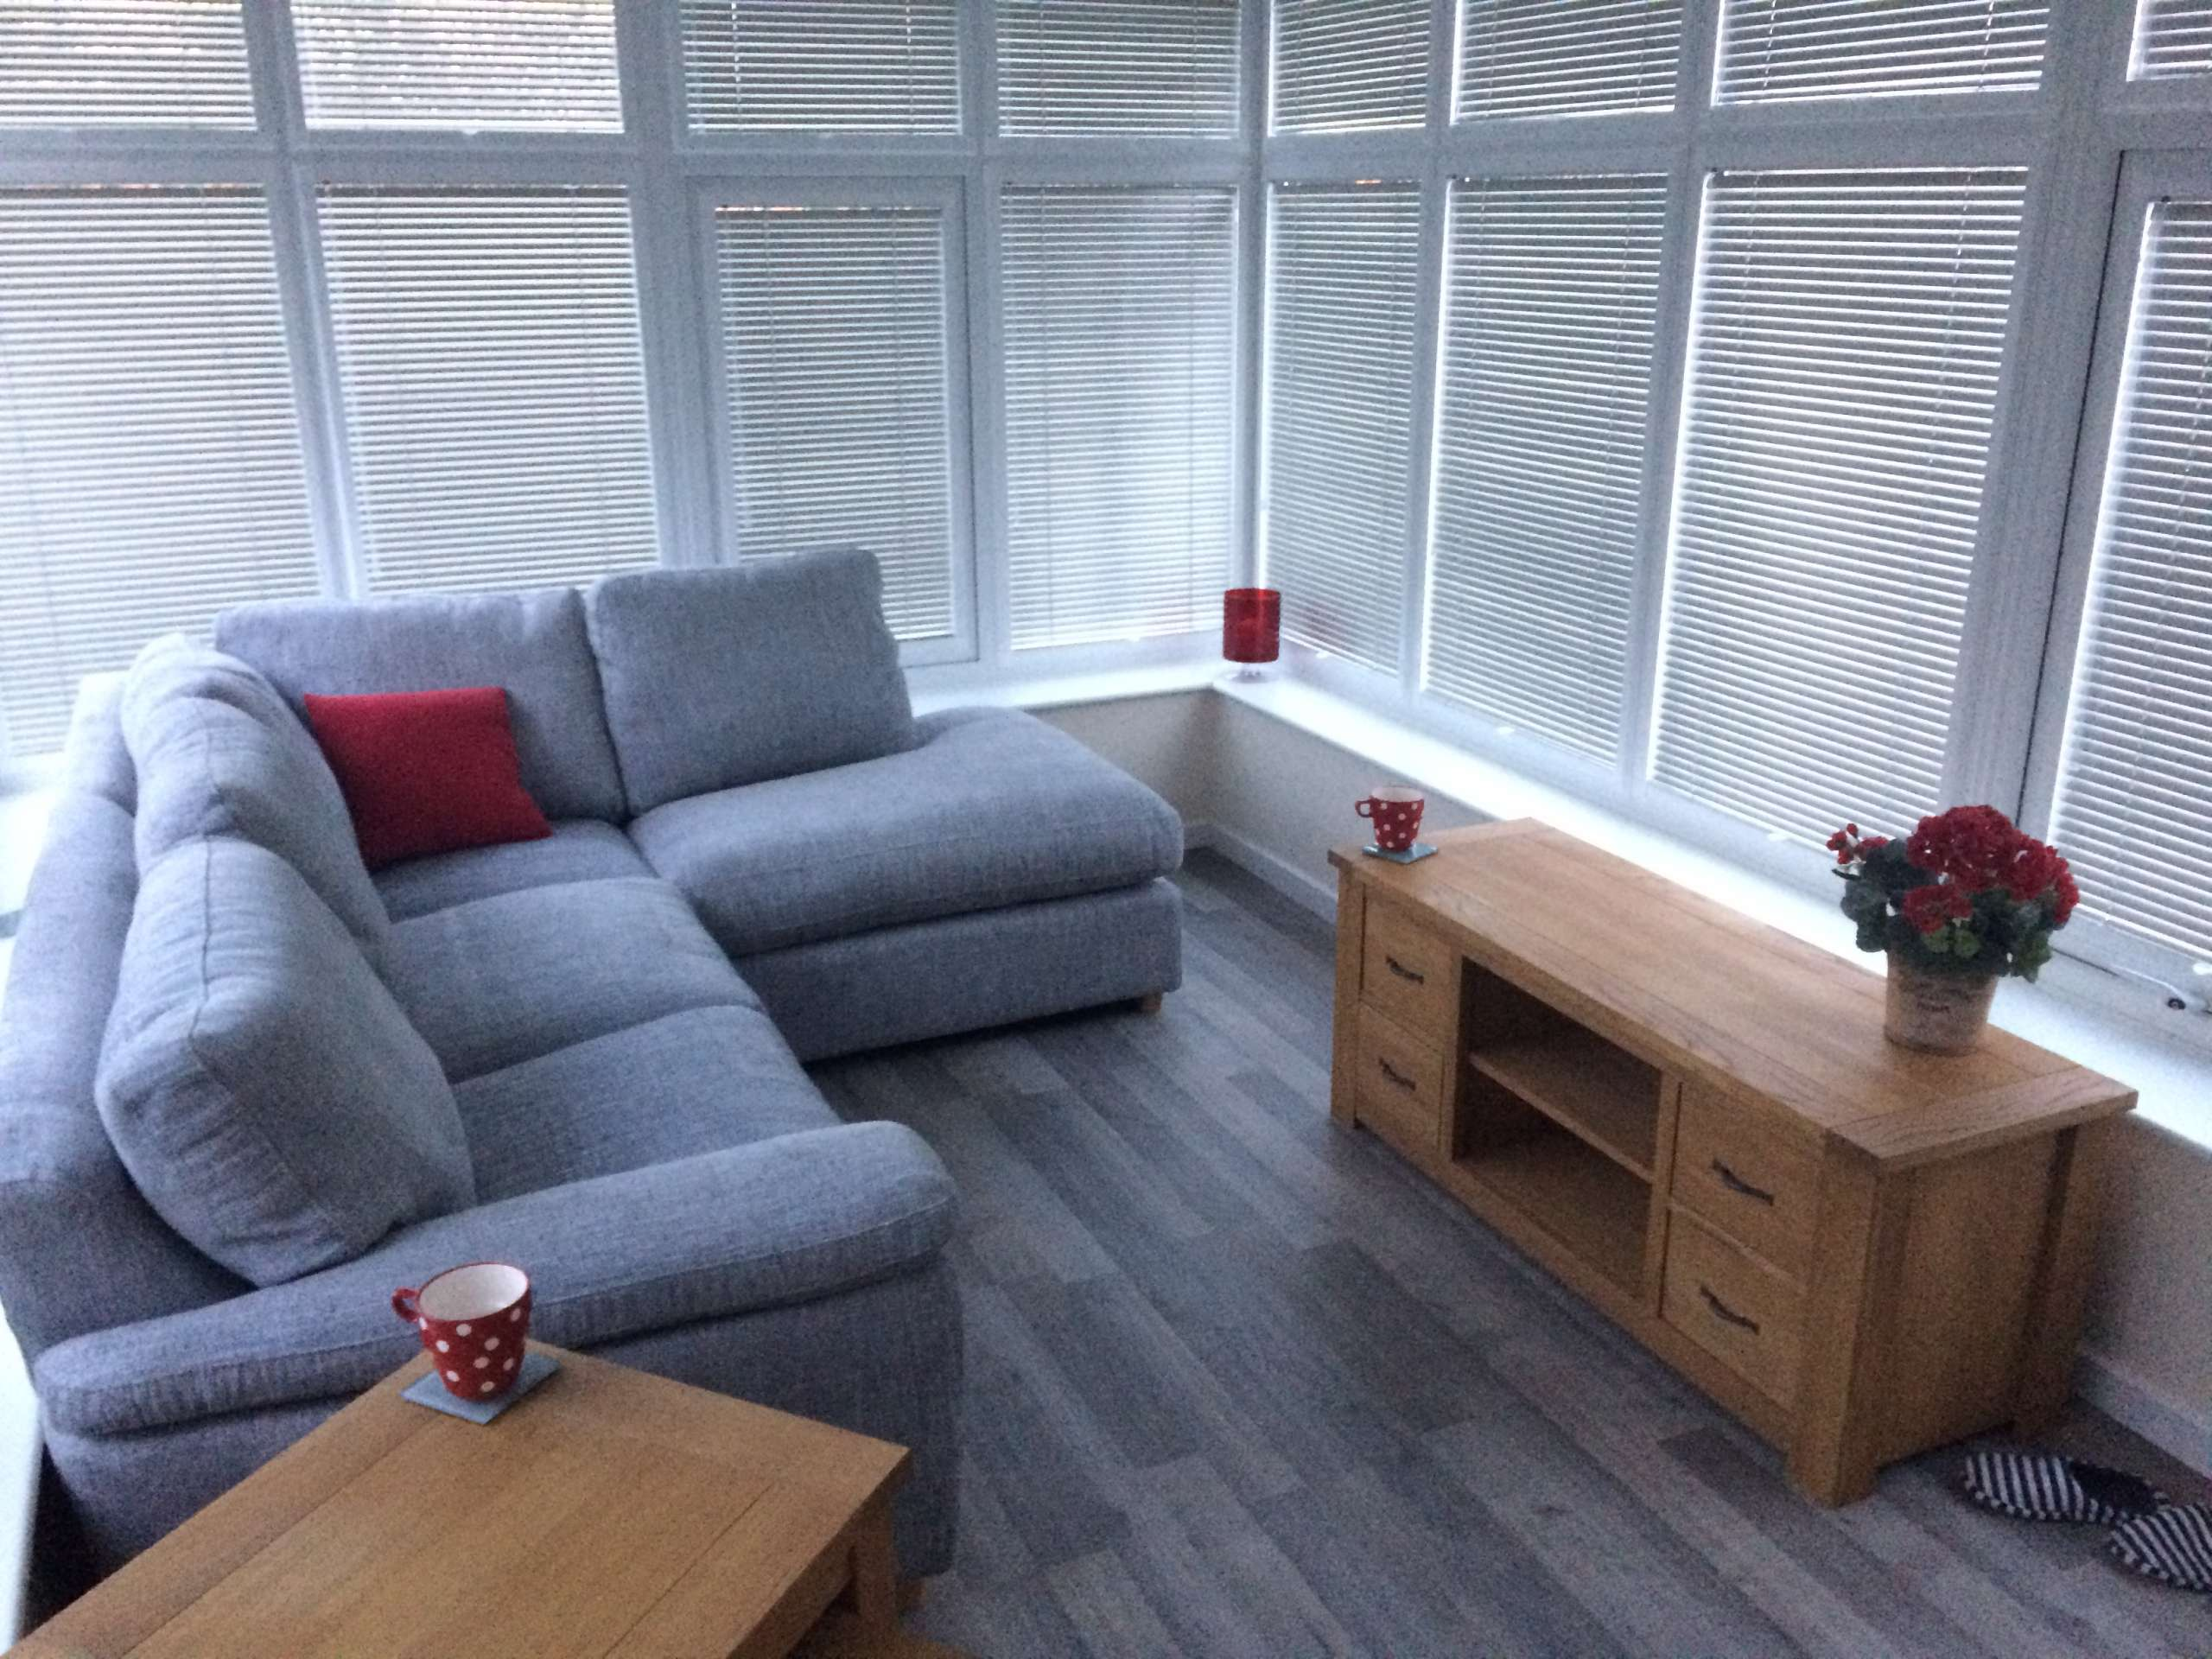 fitted conservatory blinds